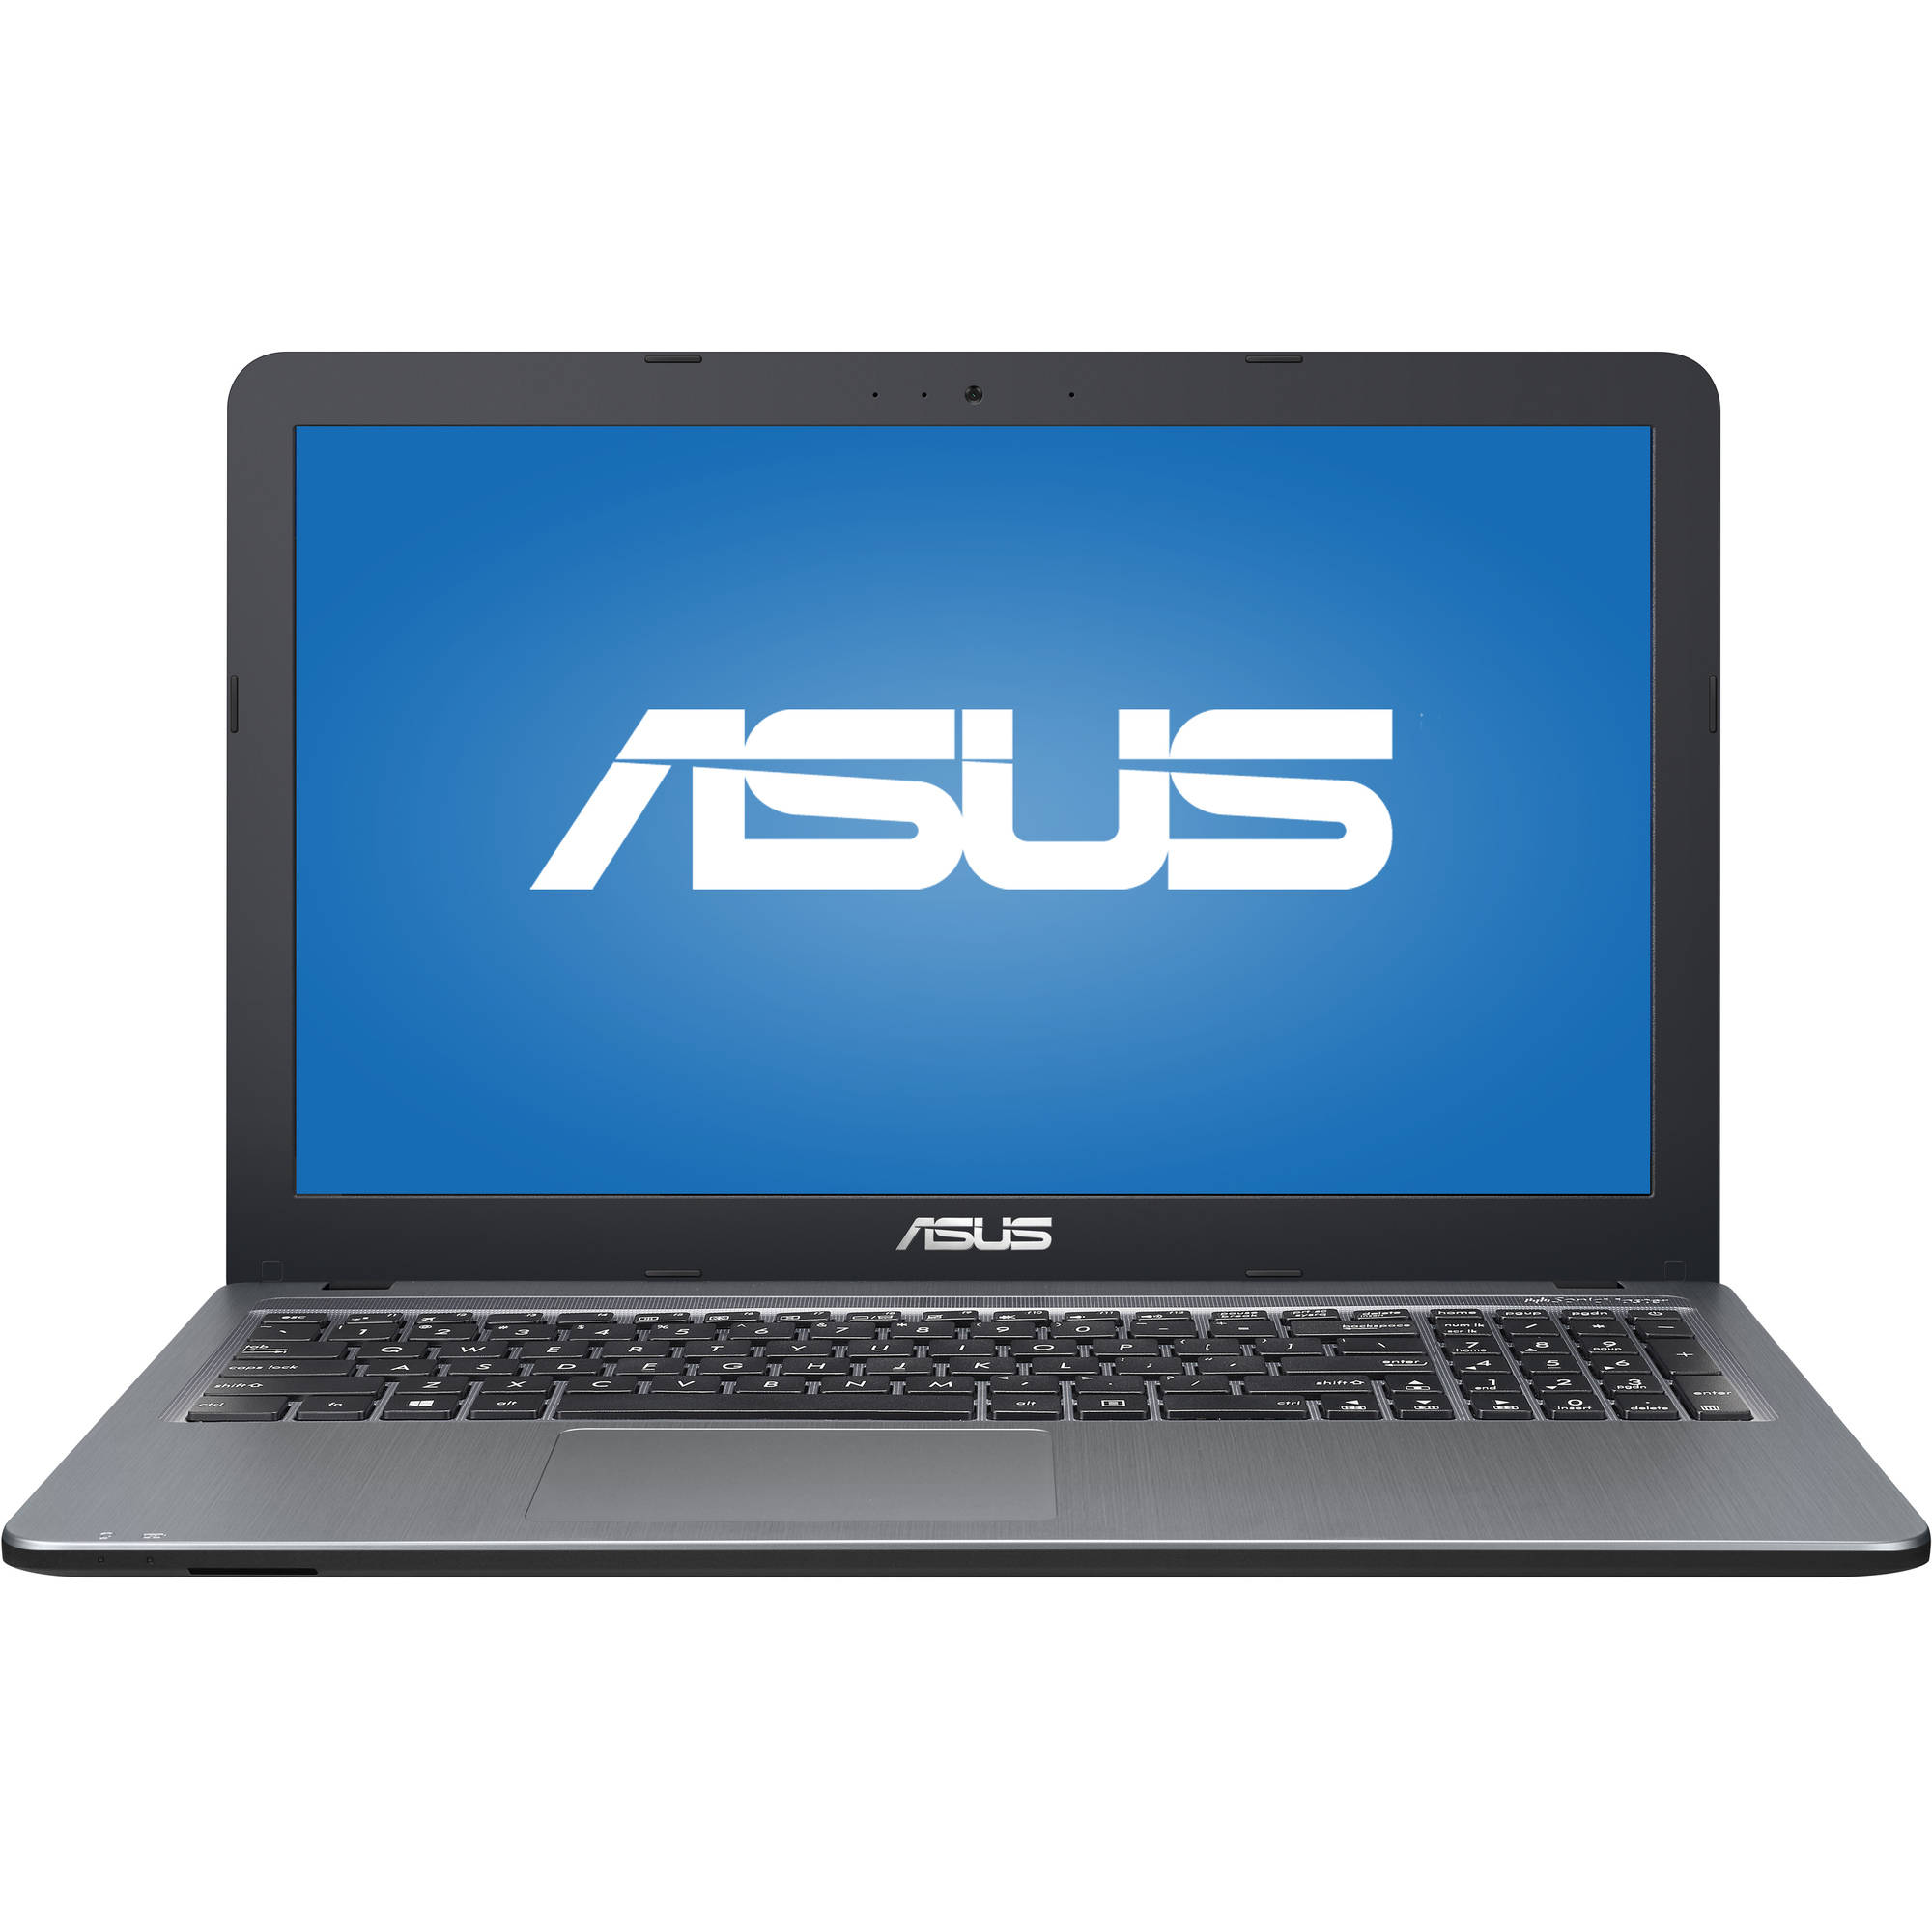 "ASUS X540SA 15.6"" Laptop, Windows 10, Intel Pentium N3710 Processor, 4GB RAM, 1TB Hard Drive"